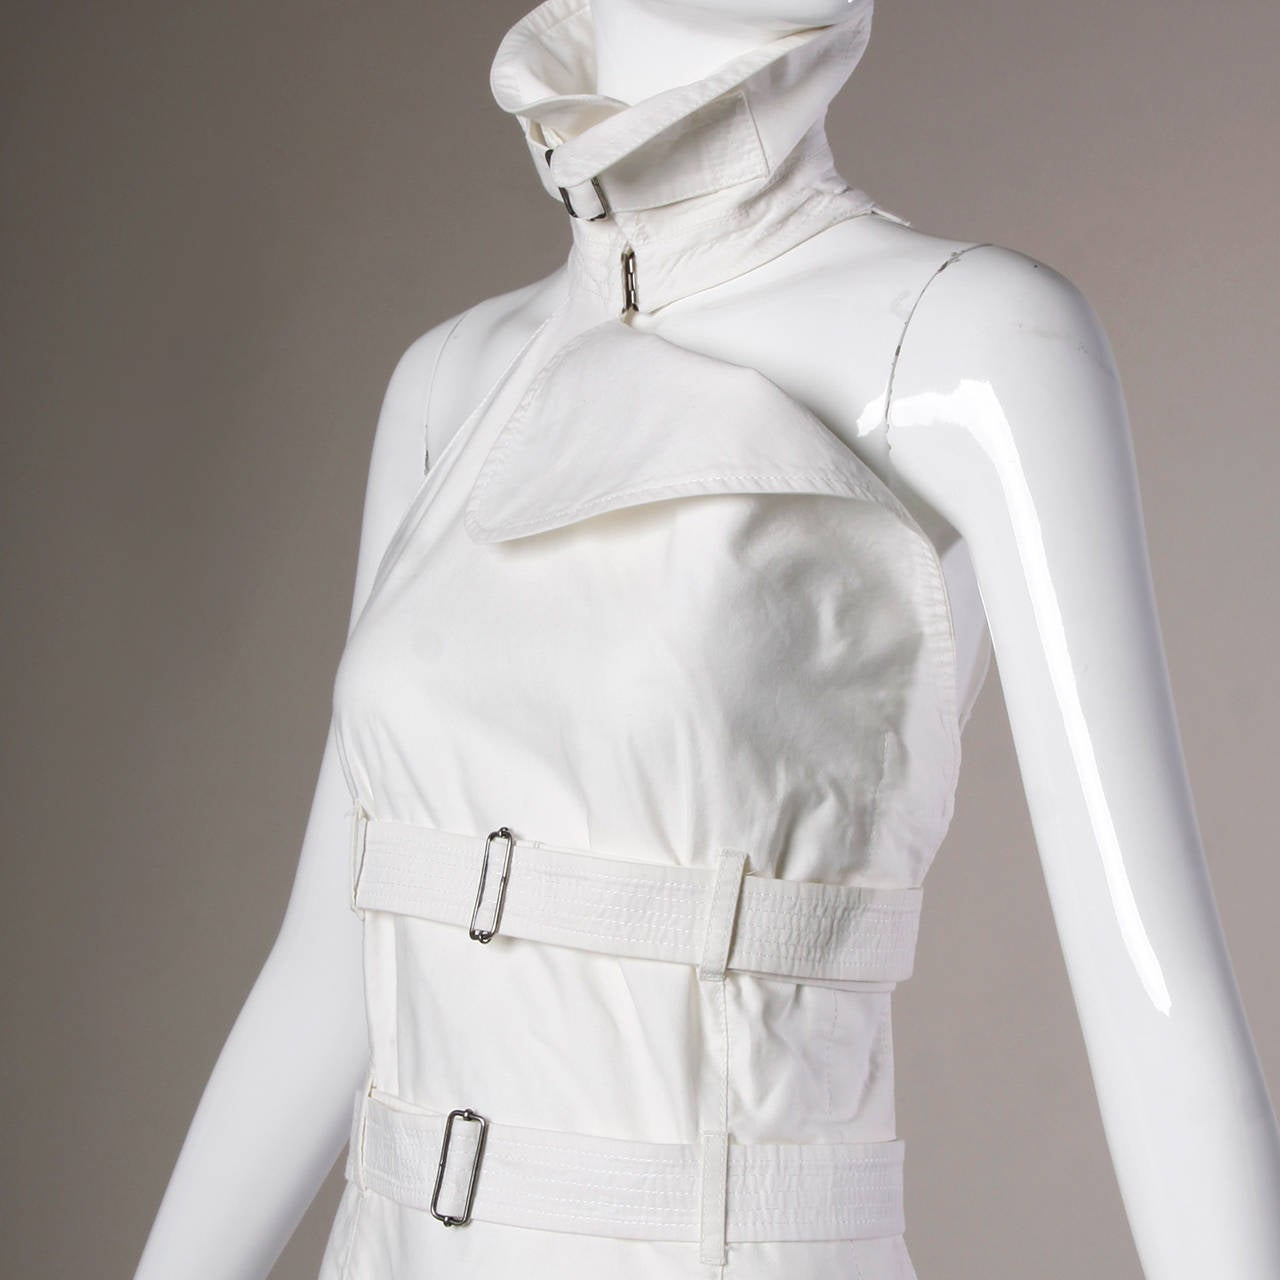 Reduced from $1,295! Iconic vintage straitjacket-inspired bondage dress by Jean Paul Gaultier featuring a high collar with buckle, sleeveless sleeves and a triple belted midsection. All three of the belts are fully adjustable and removable so it